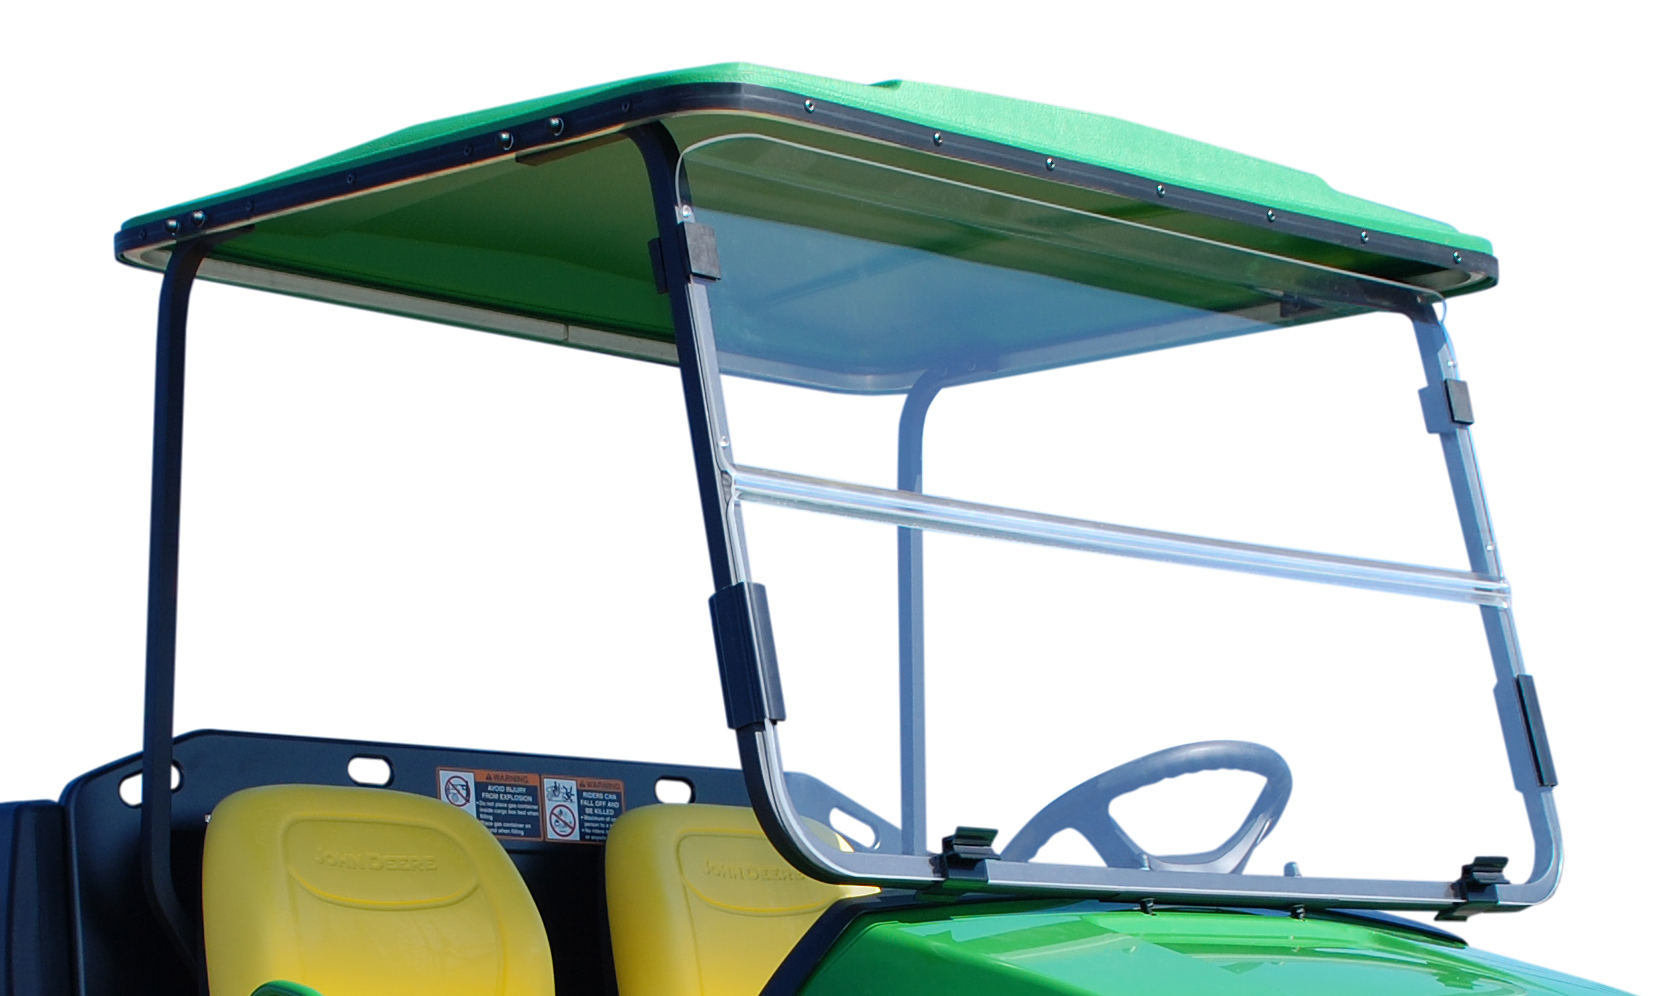 John Deere 100 Series Canopy : Plows spreaders canopies and attachments broadcast autos